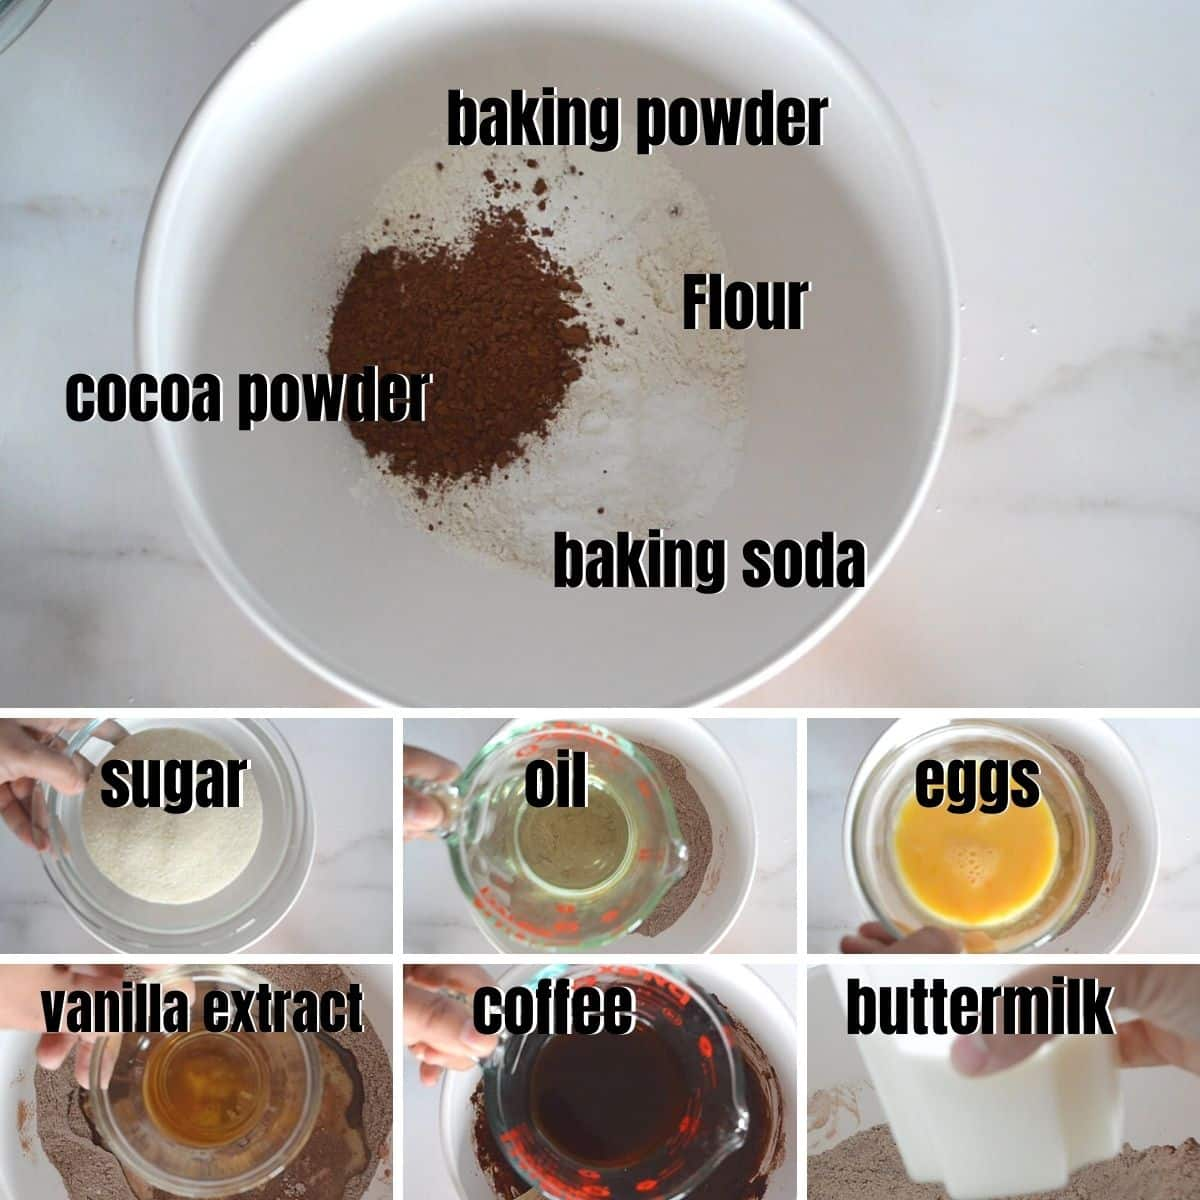 A collage of 7 photos for ingredients to make the chocolate cake.